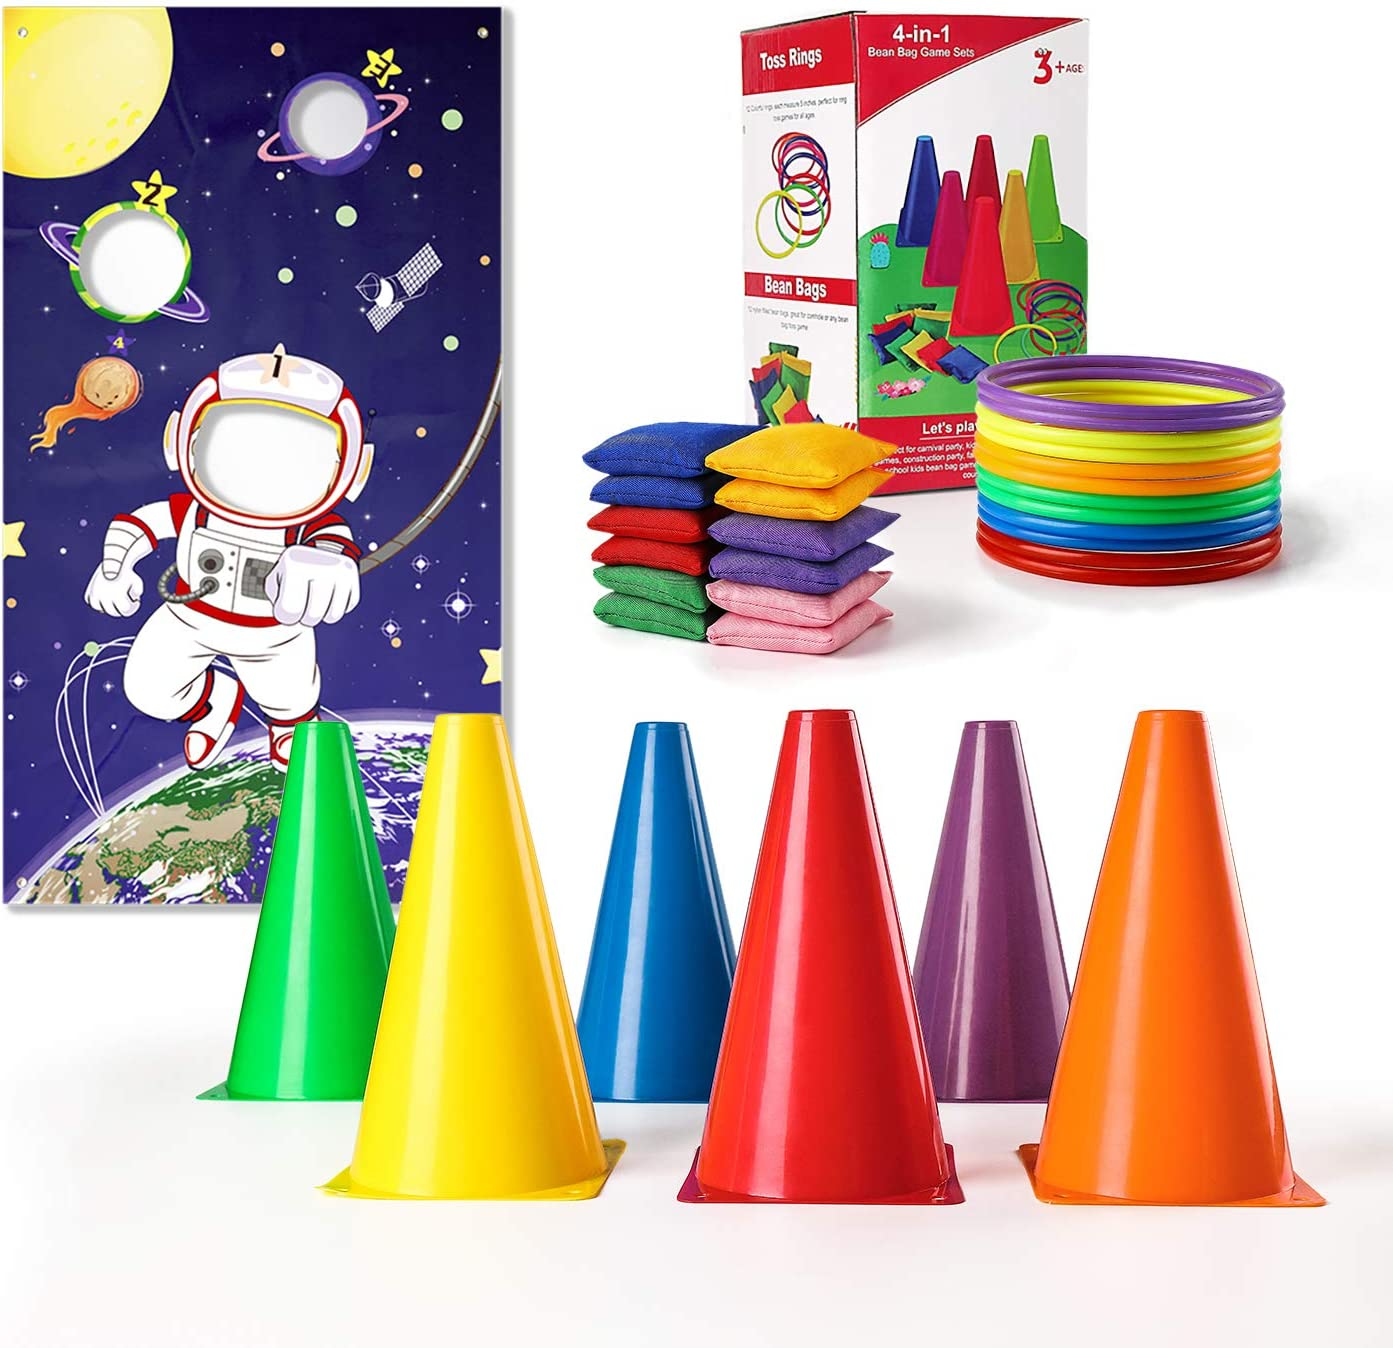 NONZERS Carnival Games Set, 4 in 1 Bean Bags Ring Toss Game with 12 Bean Bags, 12 Ring Toss, 6 Plastic Cones and One Toss Banner for Kids Birthday Carnival Party Outdoor Indoor Games Supplies